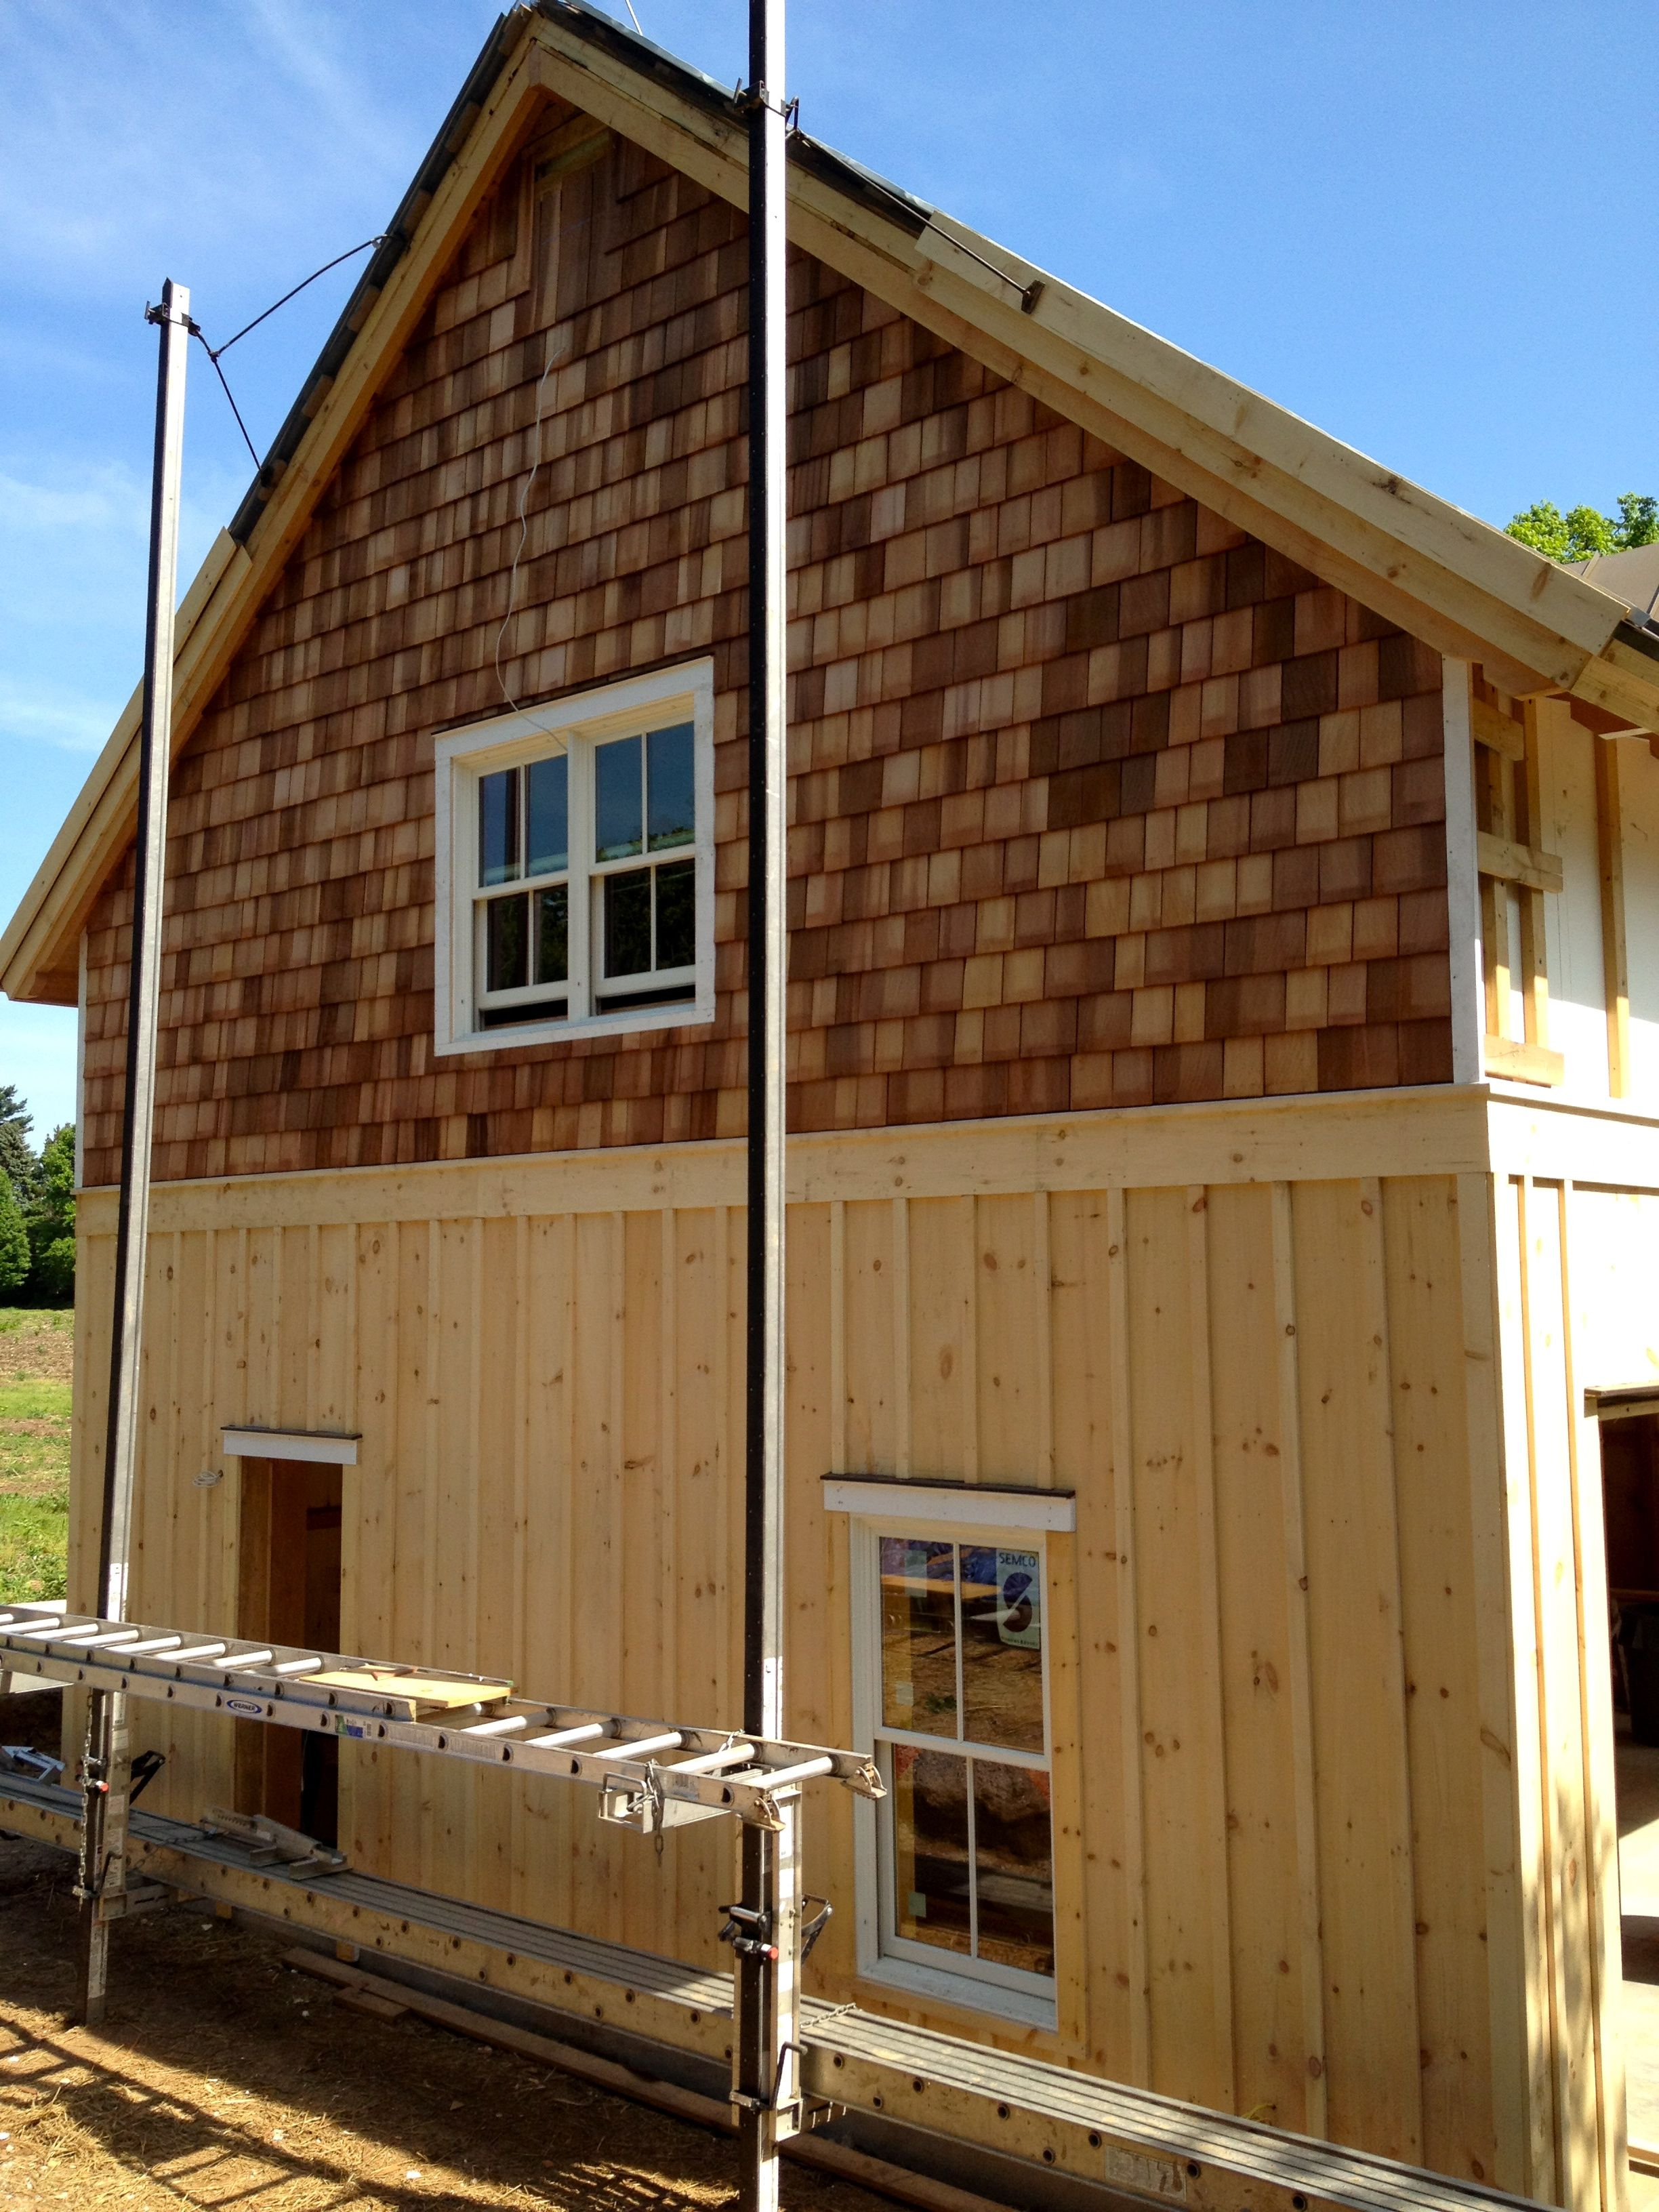 Horizontal Board And Batten Siding Board And Batten Siding With Cedar Shakes Google Search